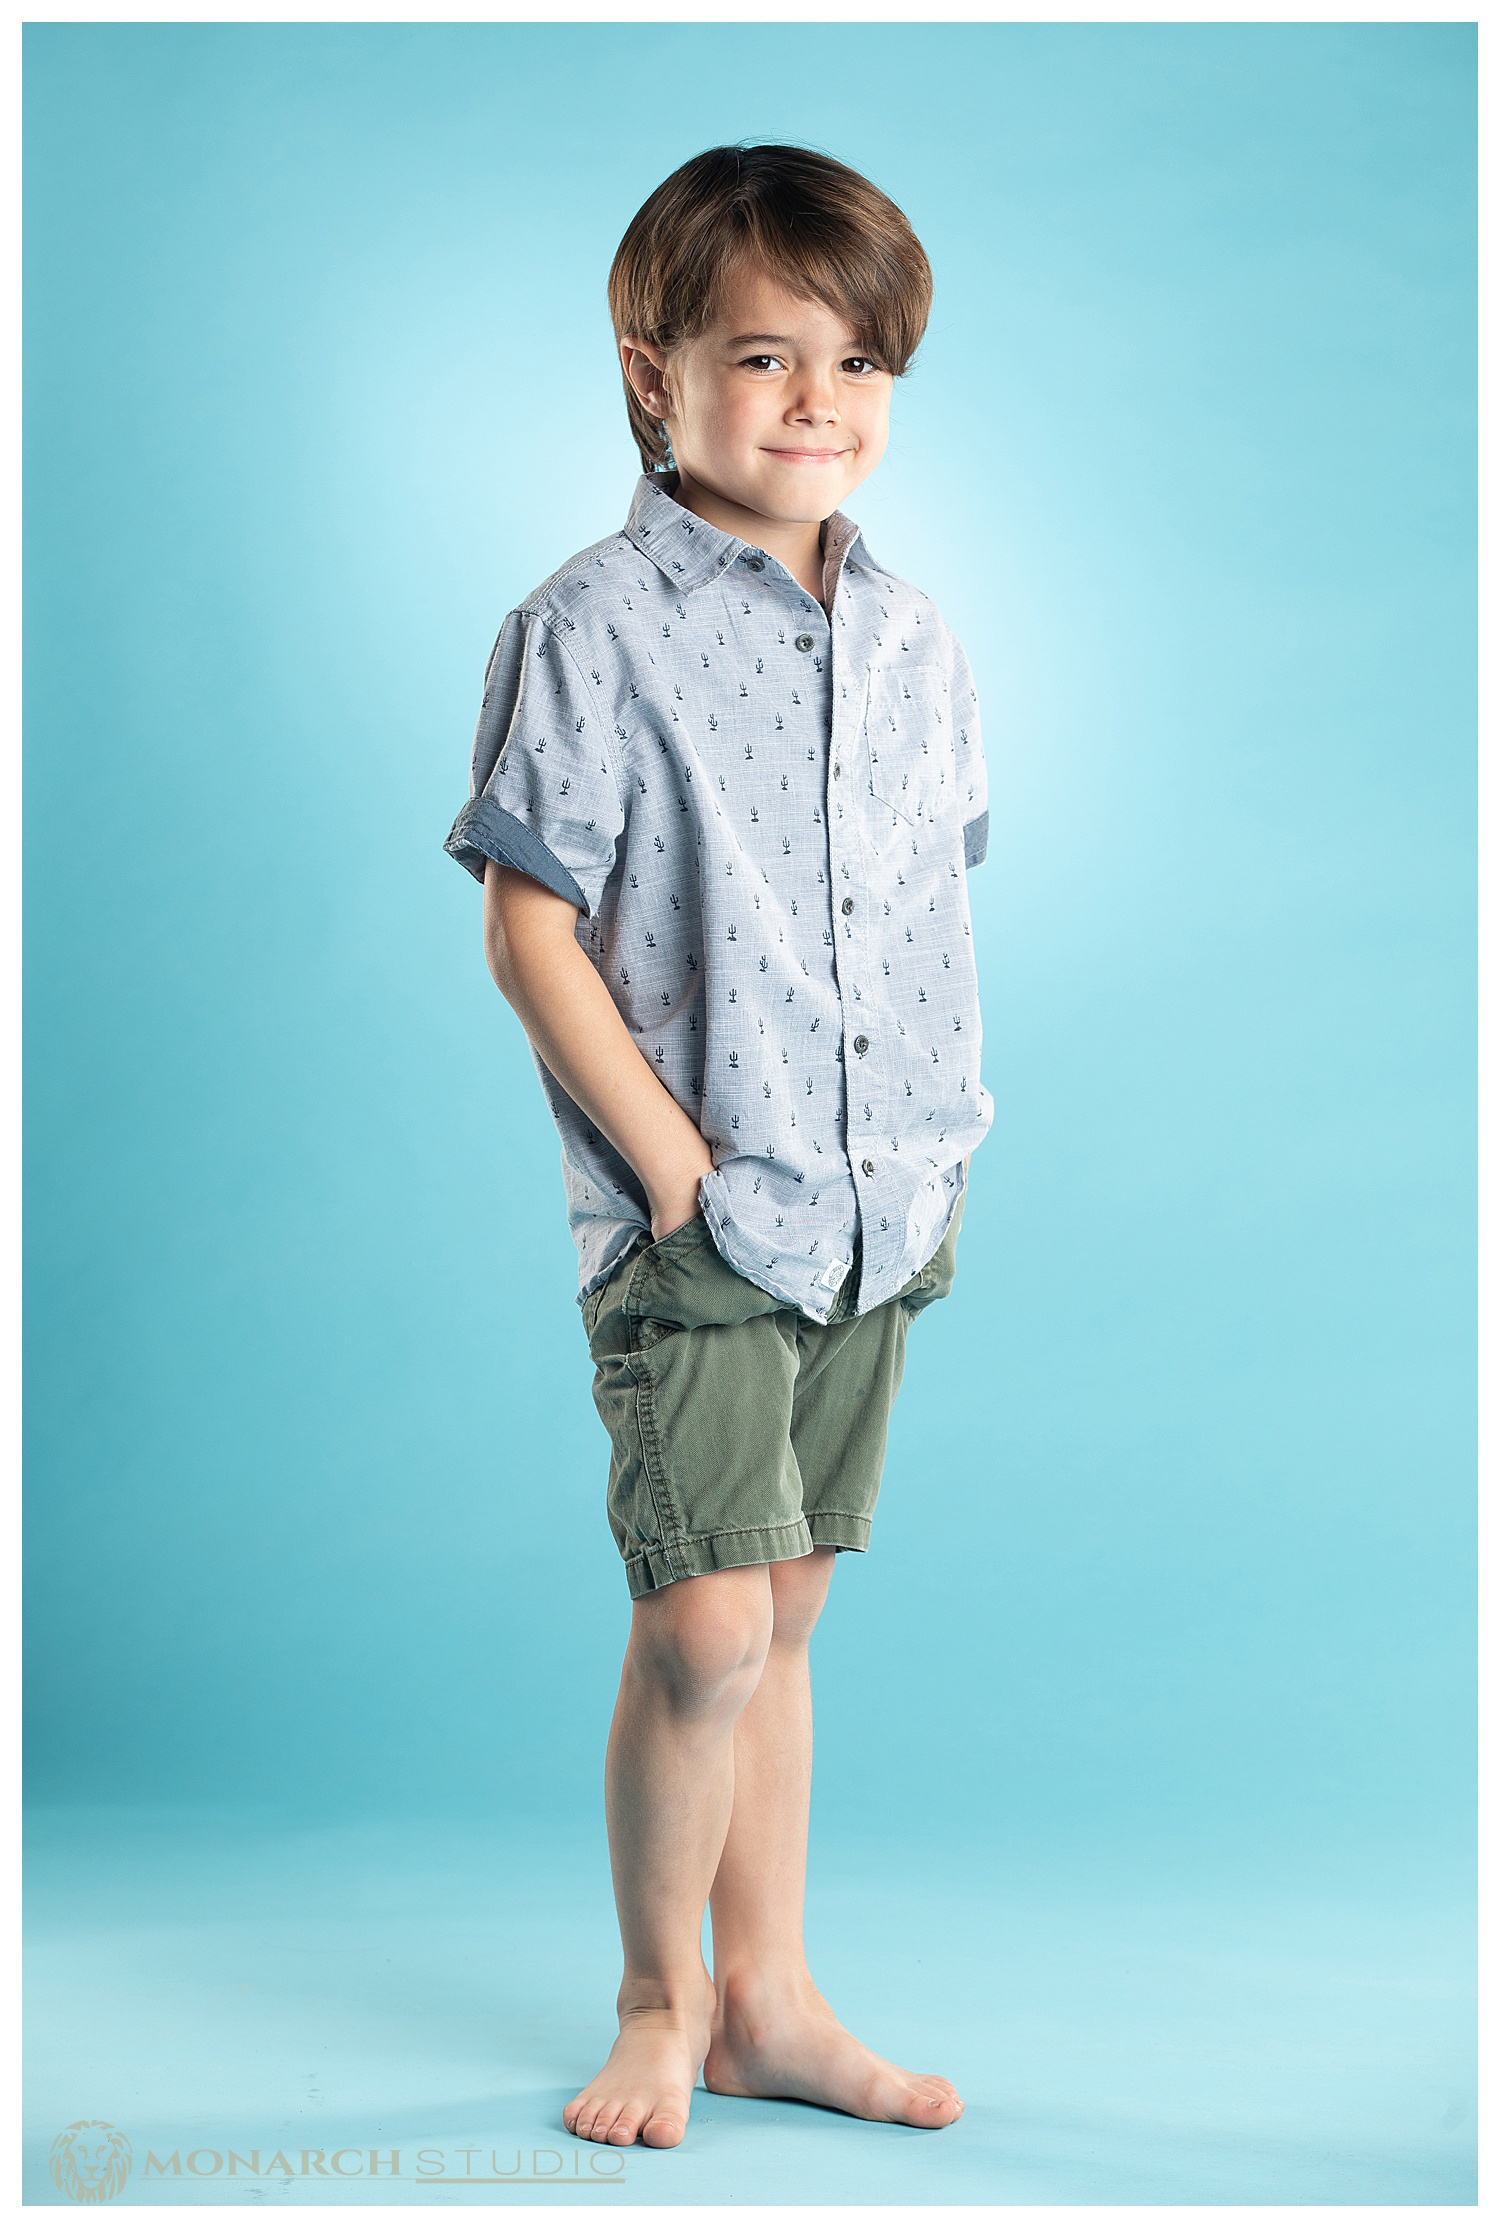 North Florida Kids Photography Studio - 011.JPG